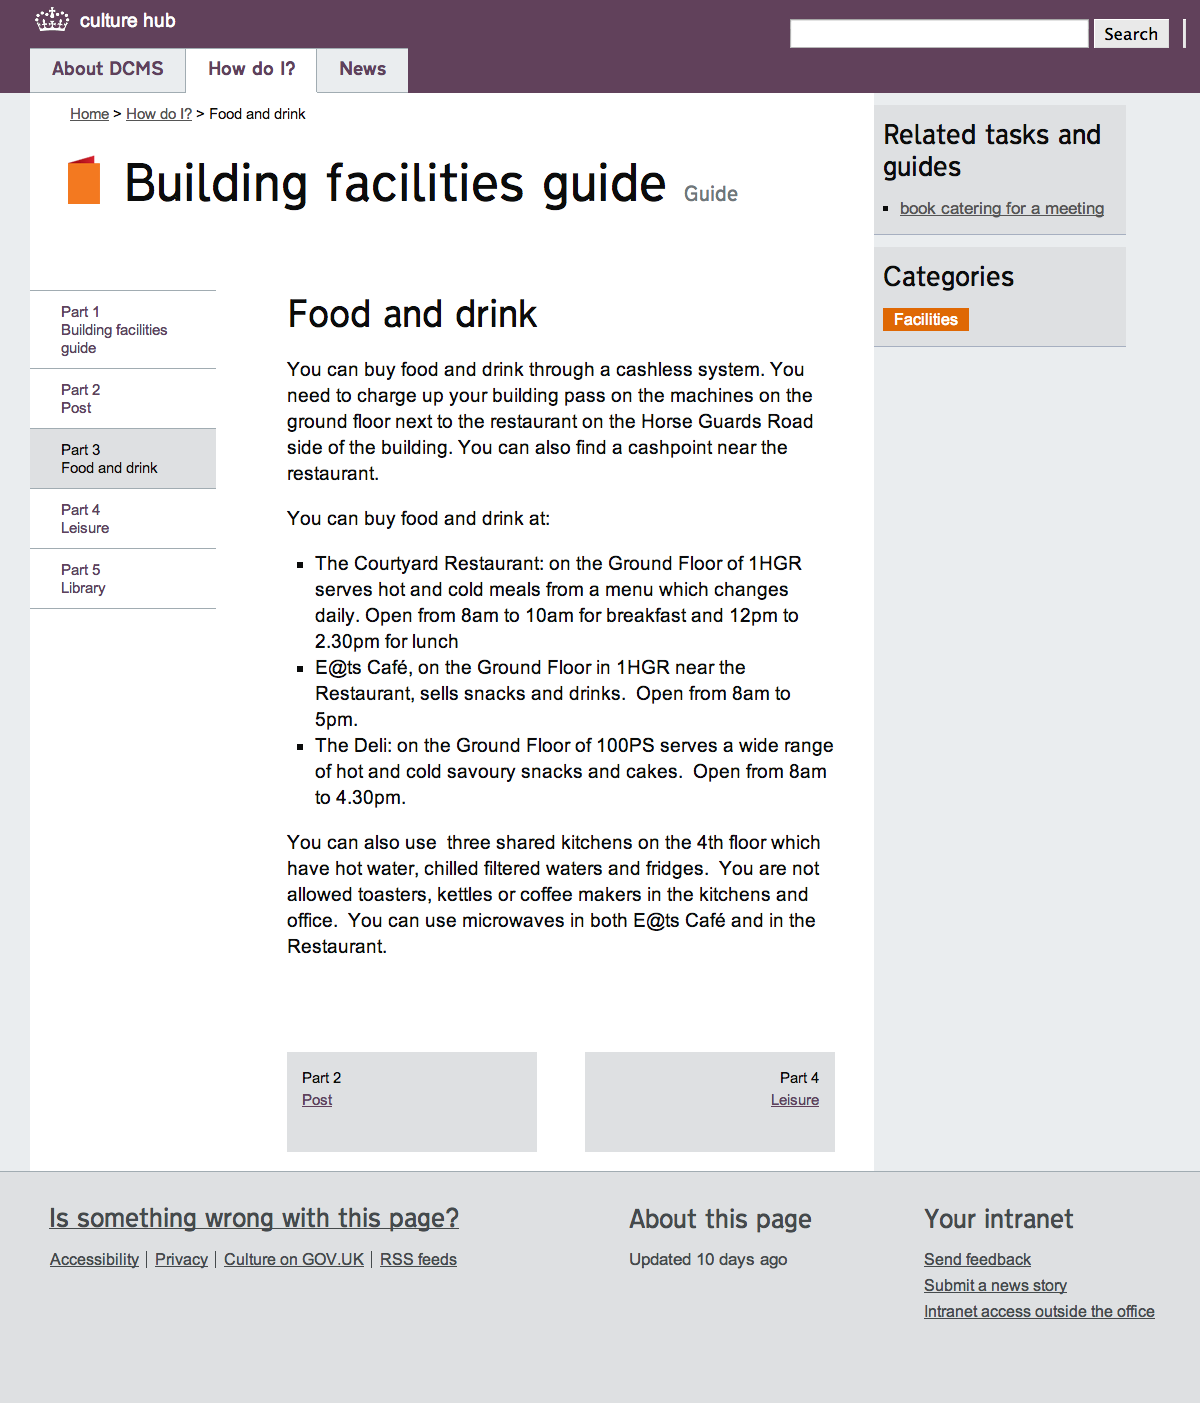 Food and drink | culture hub tasks and guides